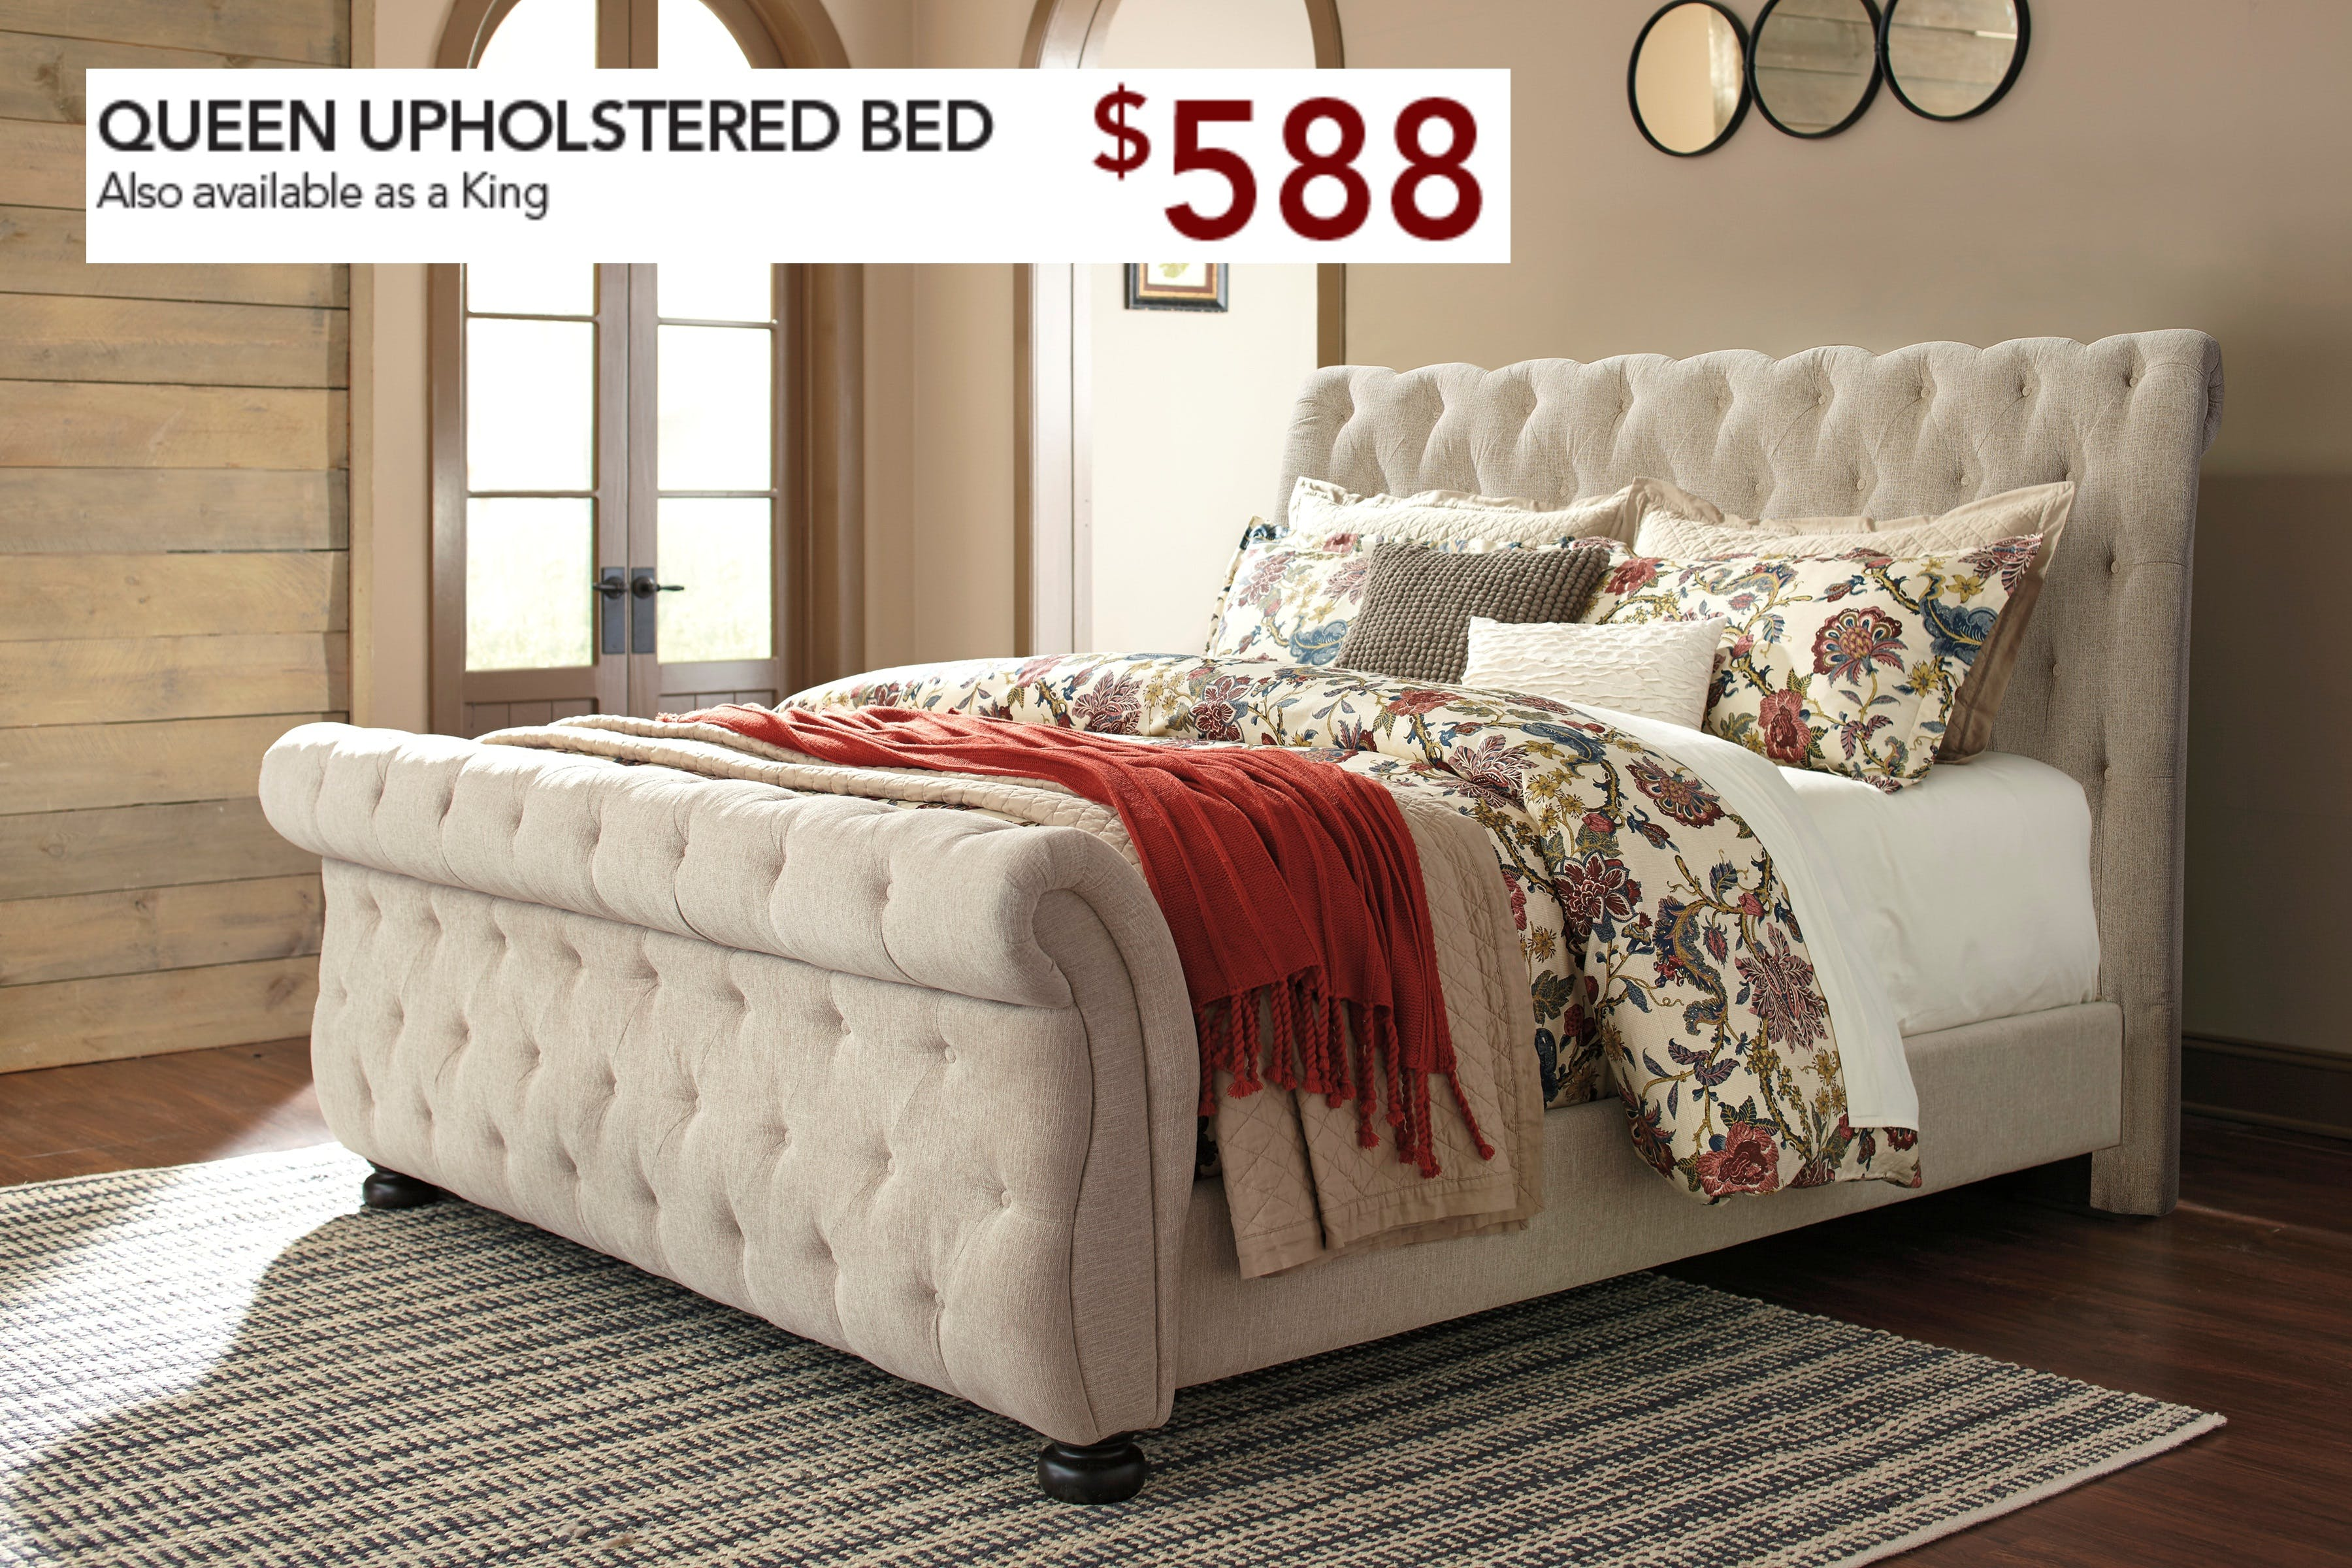 Signature Design By Ashley Bedroom Queen Upholstered Headboard Footboard And Side Rails Pk B643 Qn